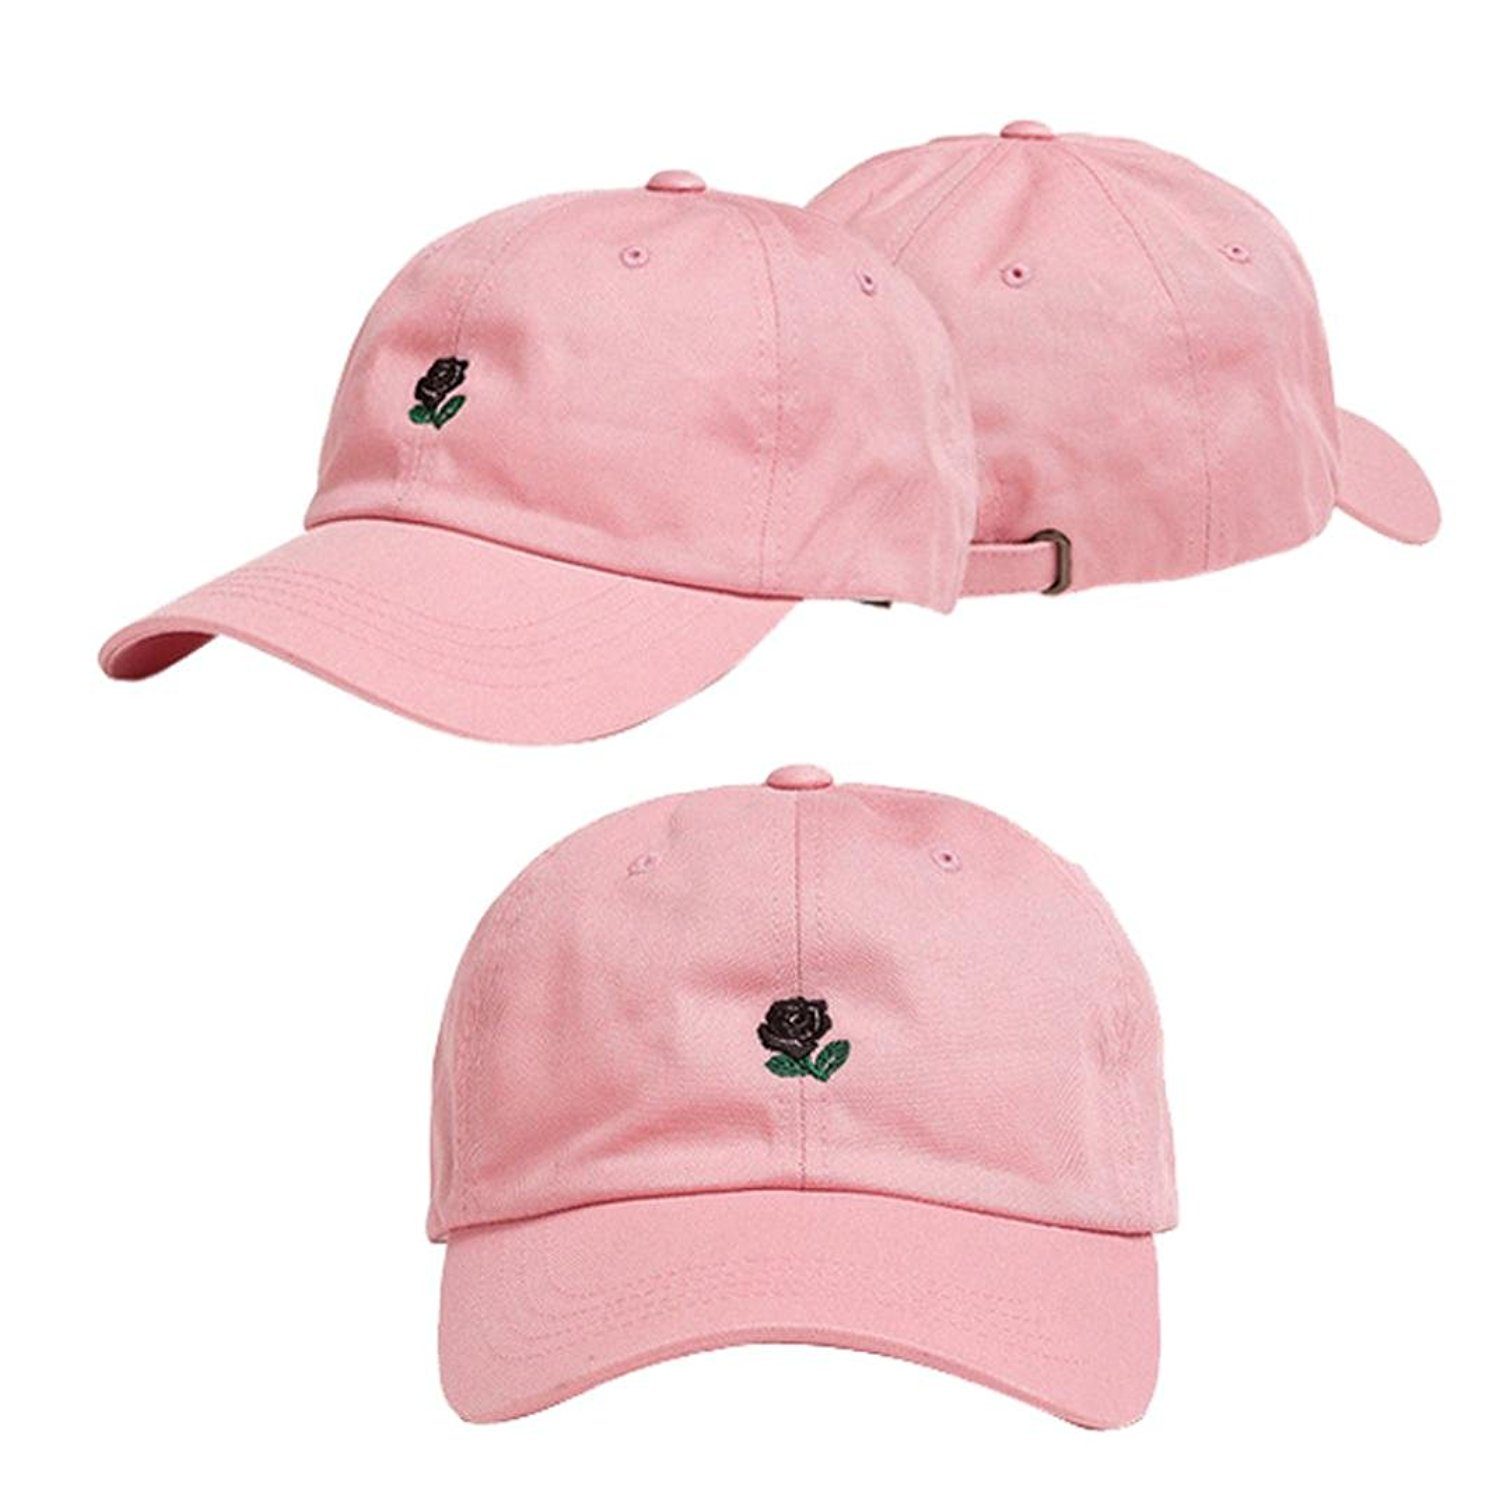 Funic Clearance Sale Rose Embroidery Cotton Baseball Cap Boys Girls Snapback Hip Hop Flat Hat